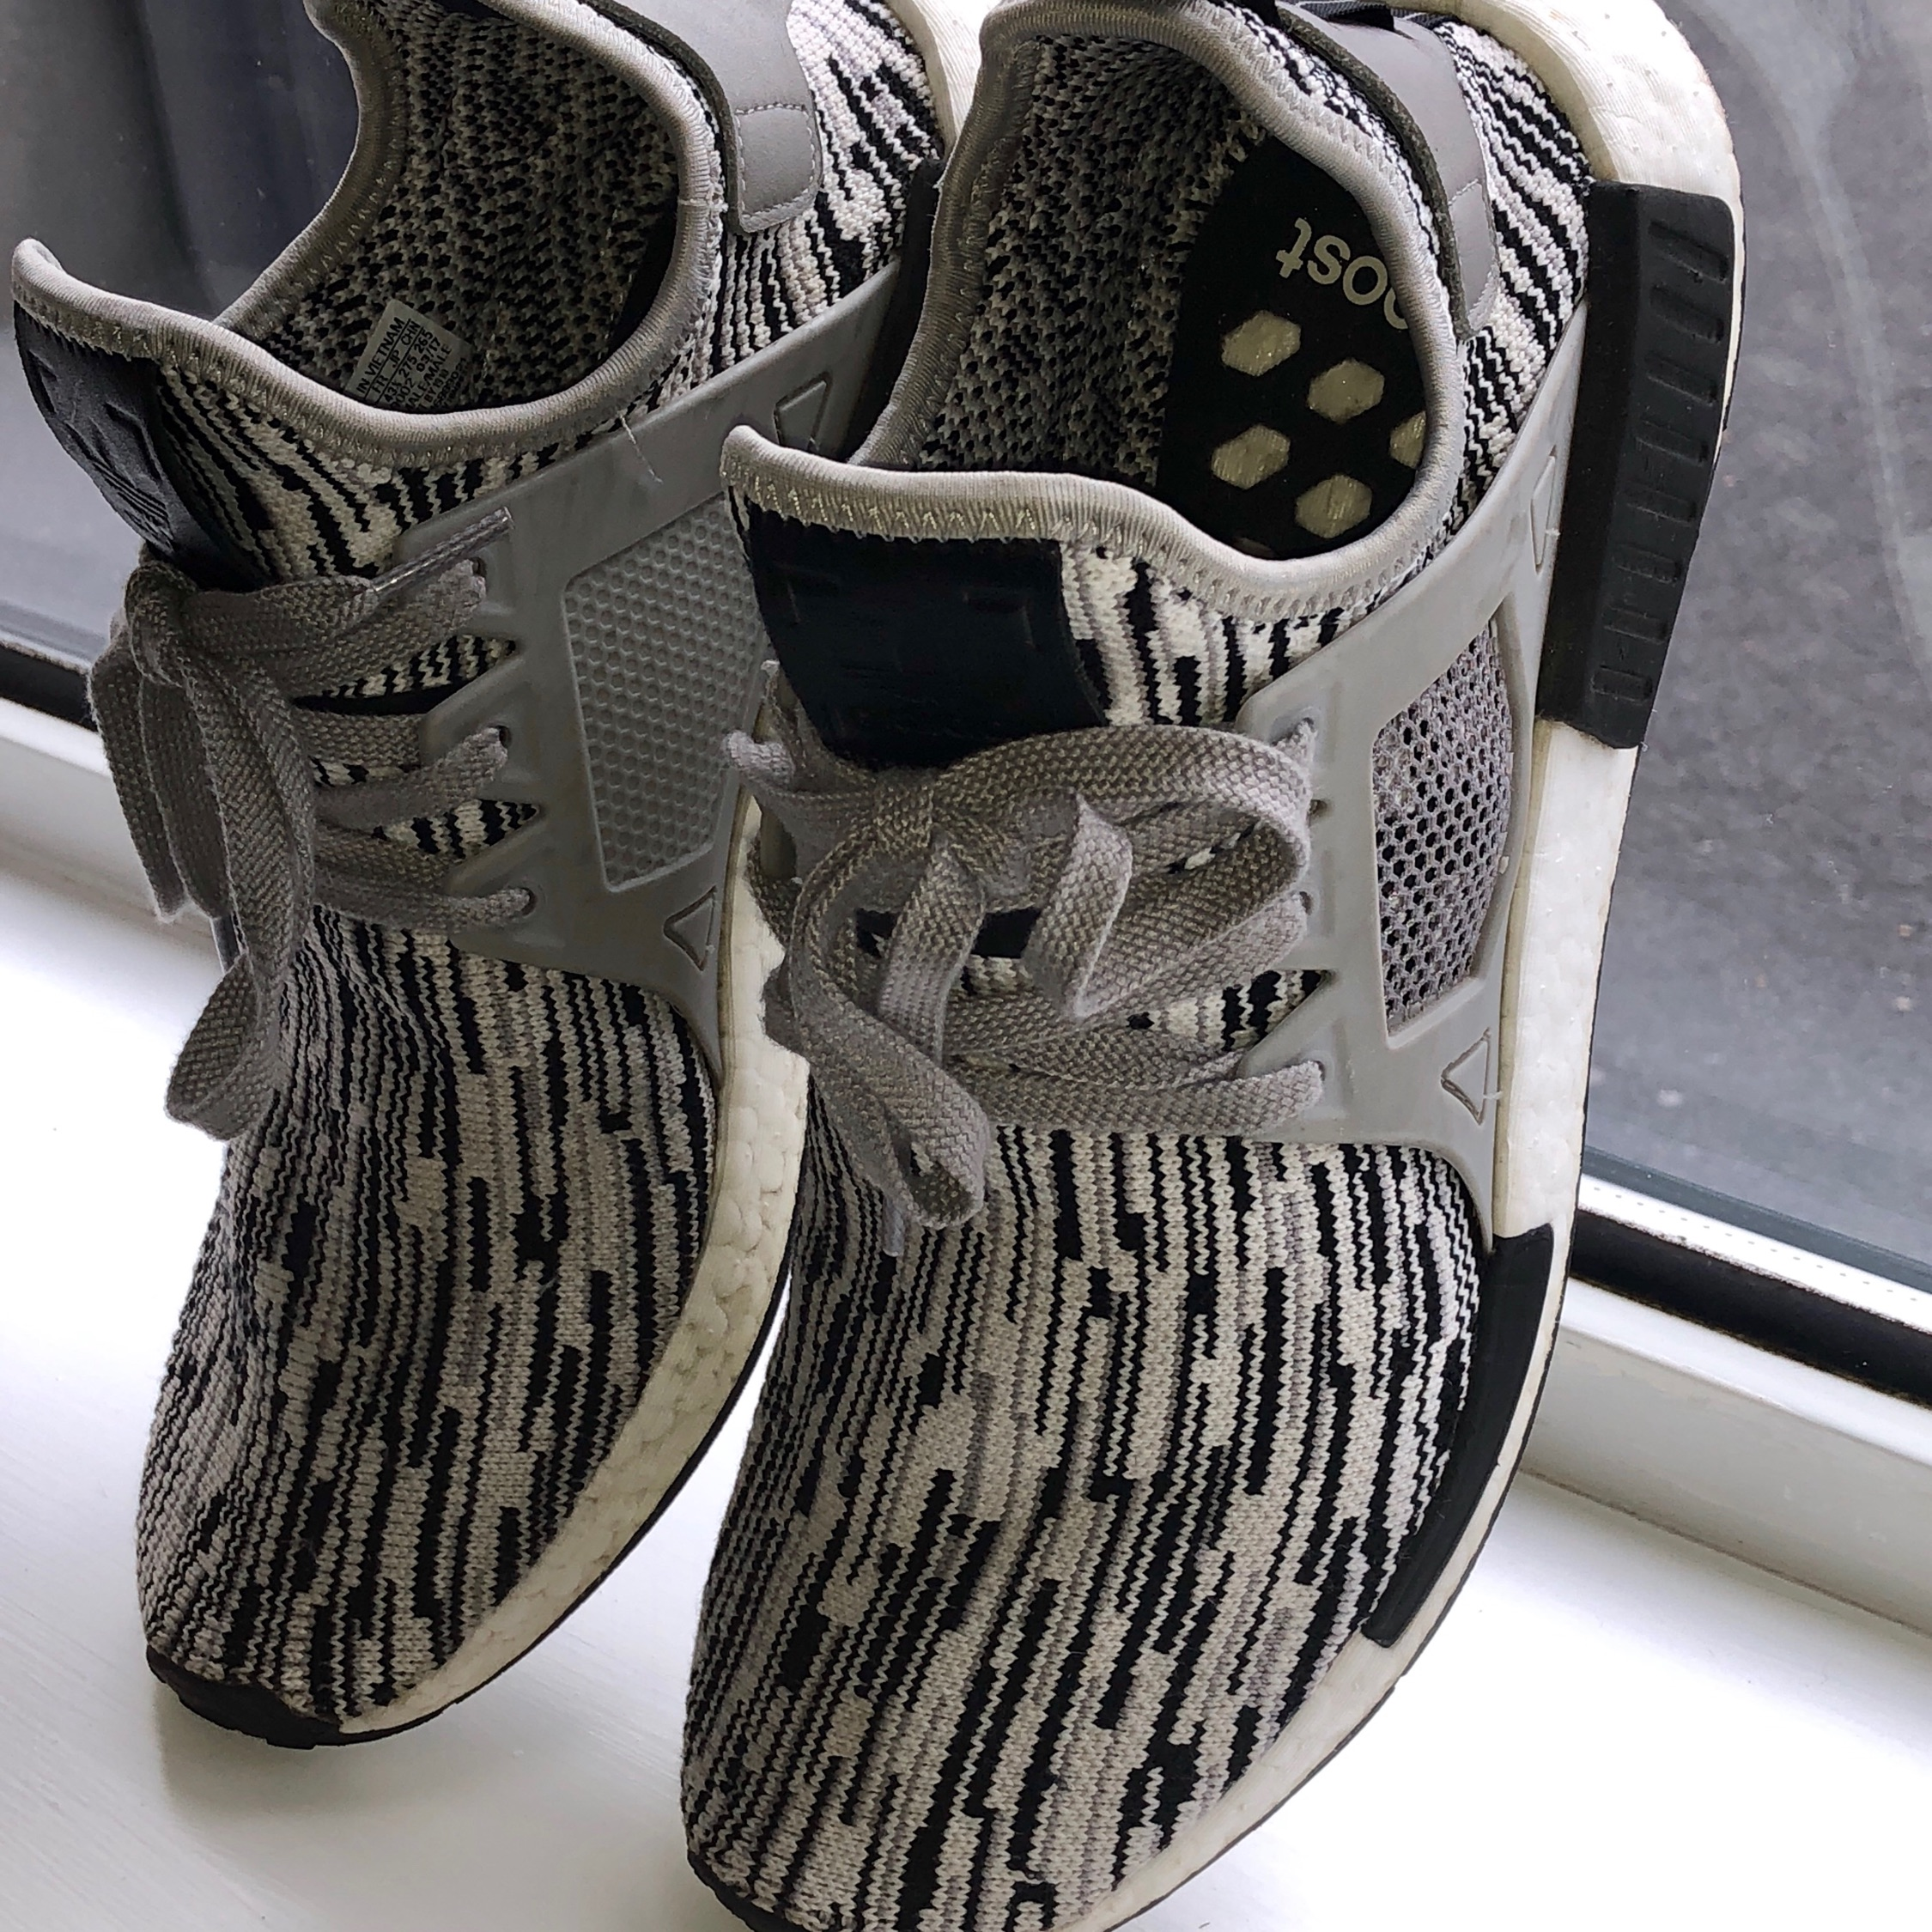 "low priced 918fc c9b81 Adidas Nmd Xr1 Glitch Camo ""Oreo"""